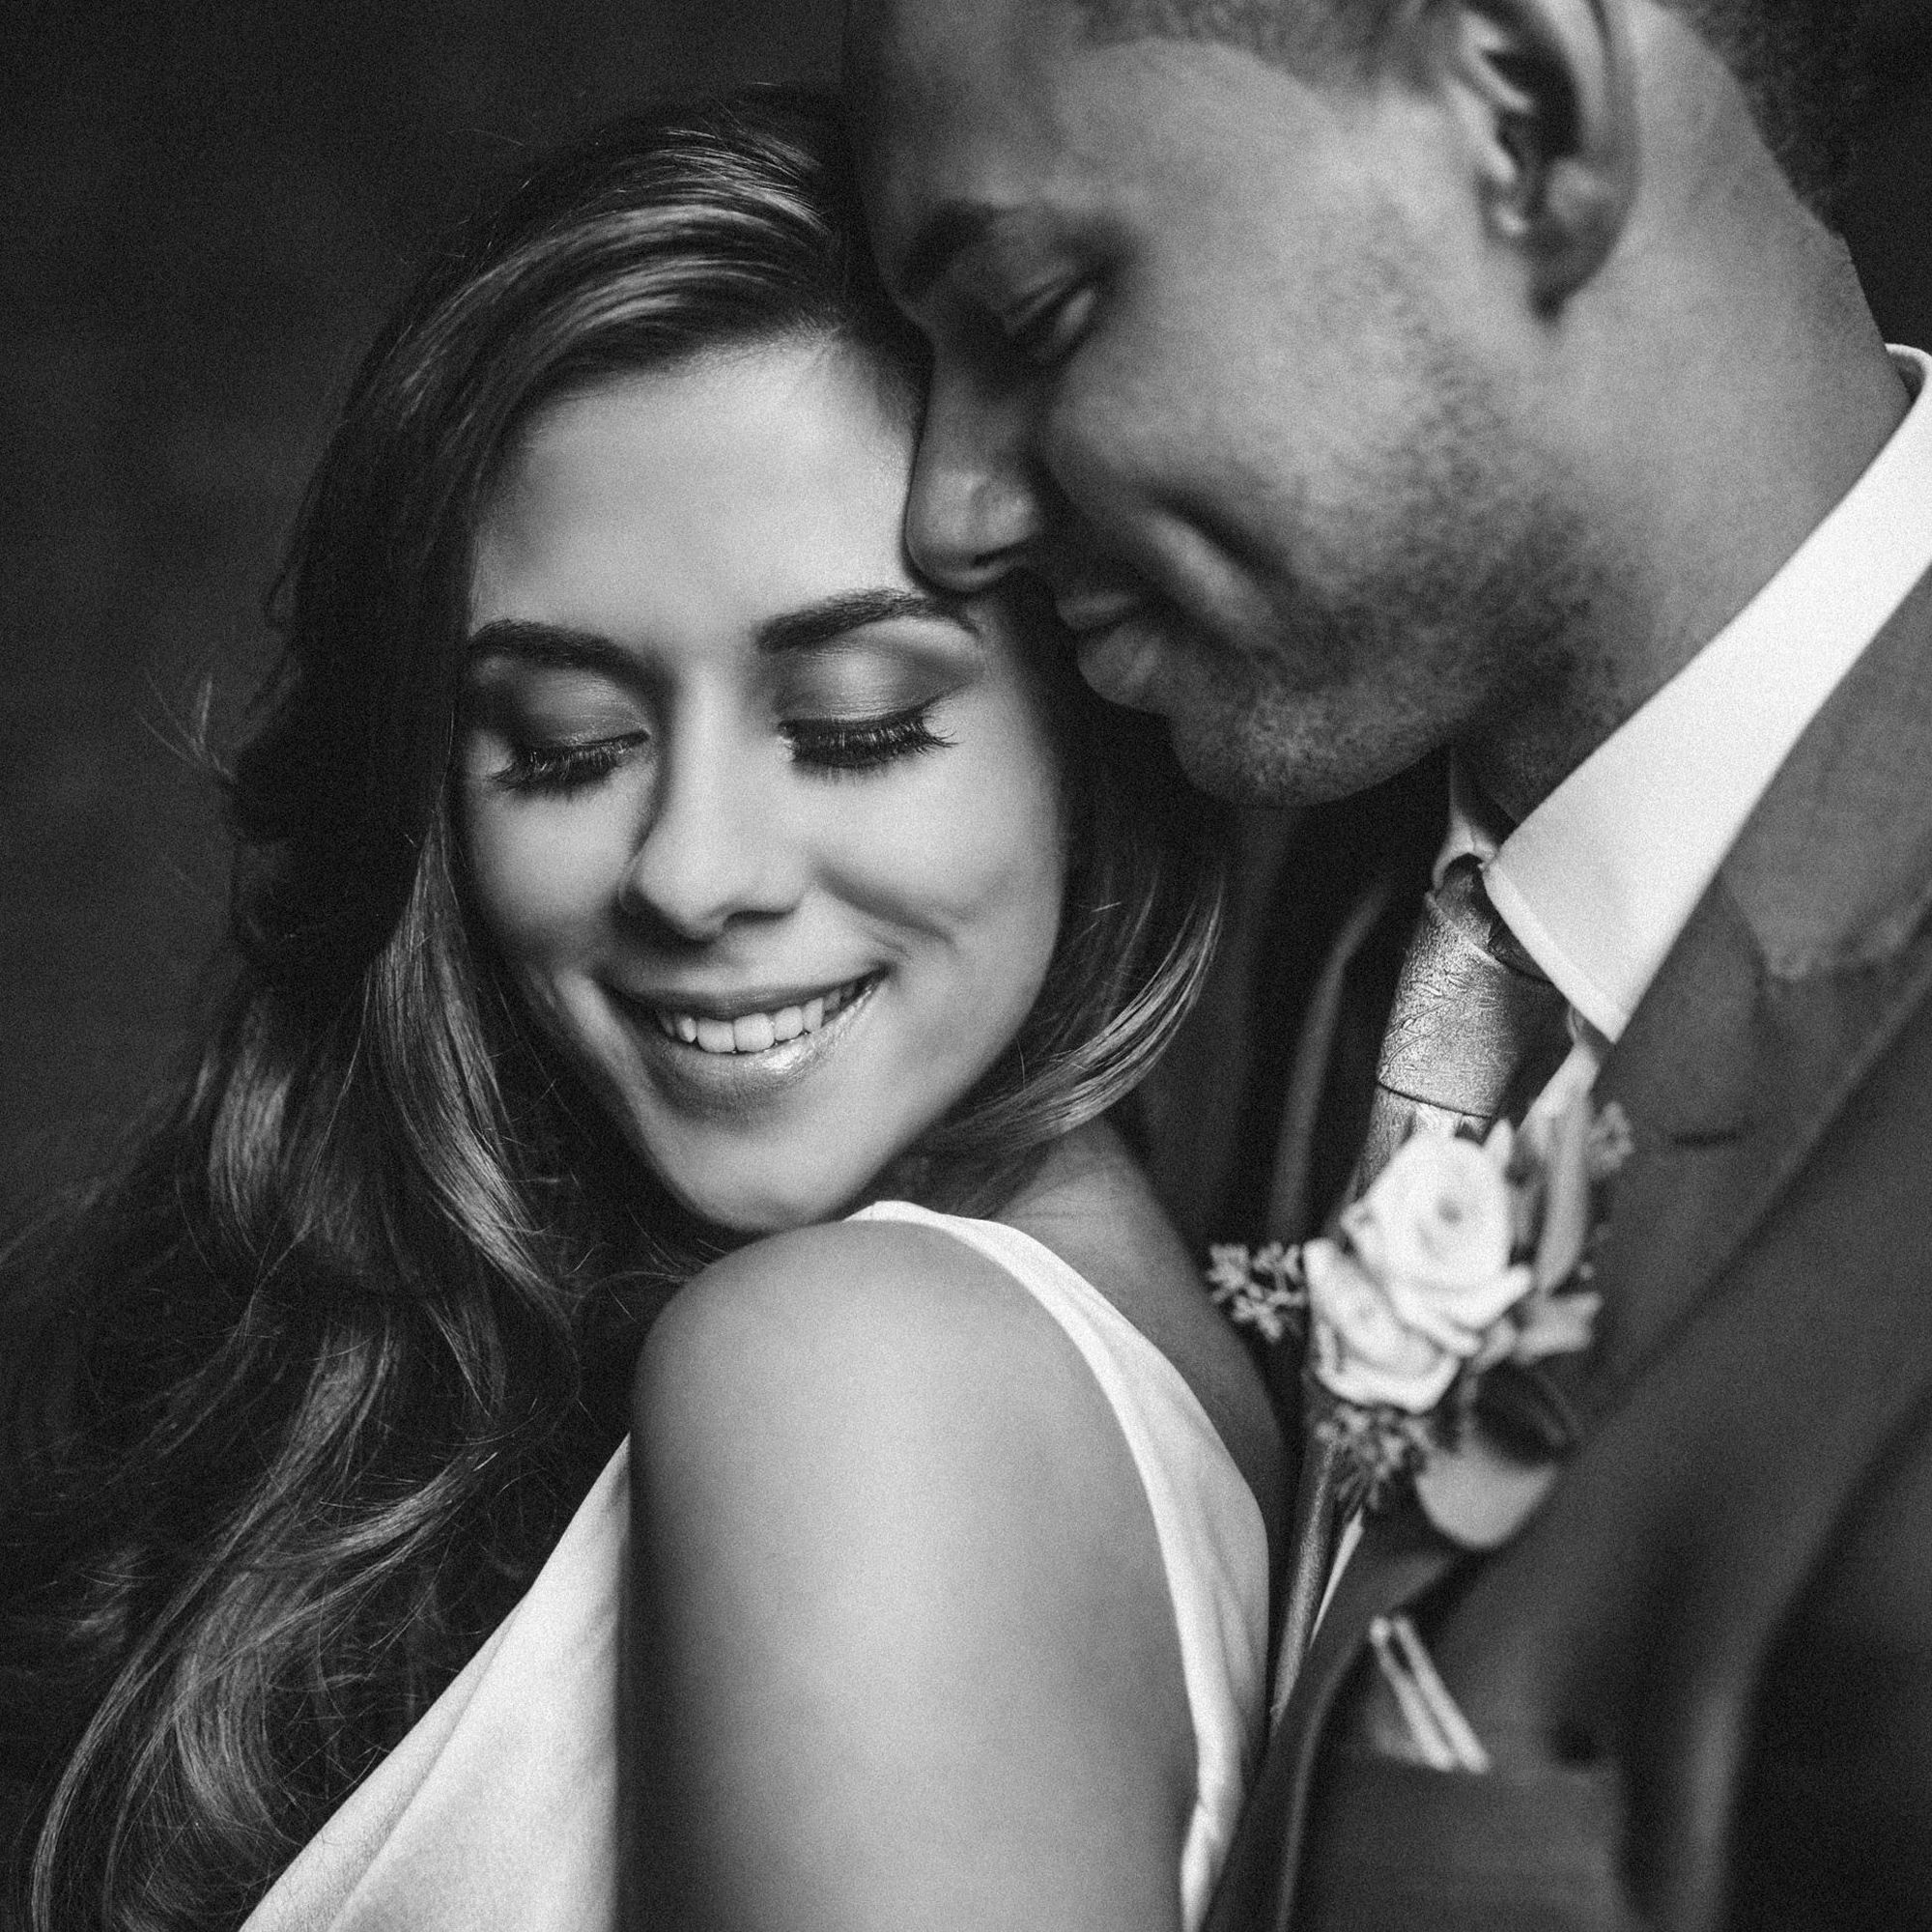 bride and groom nuzzling portrait- photo by MIKI Studios